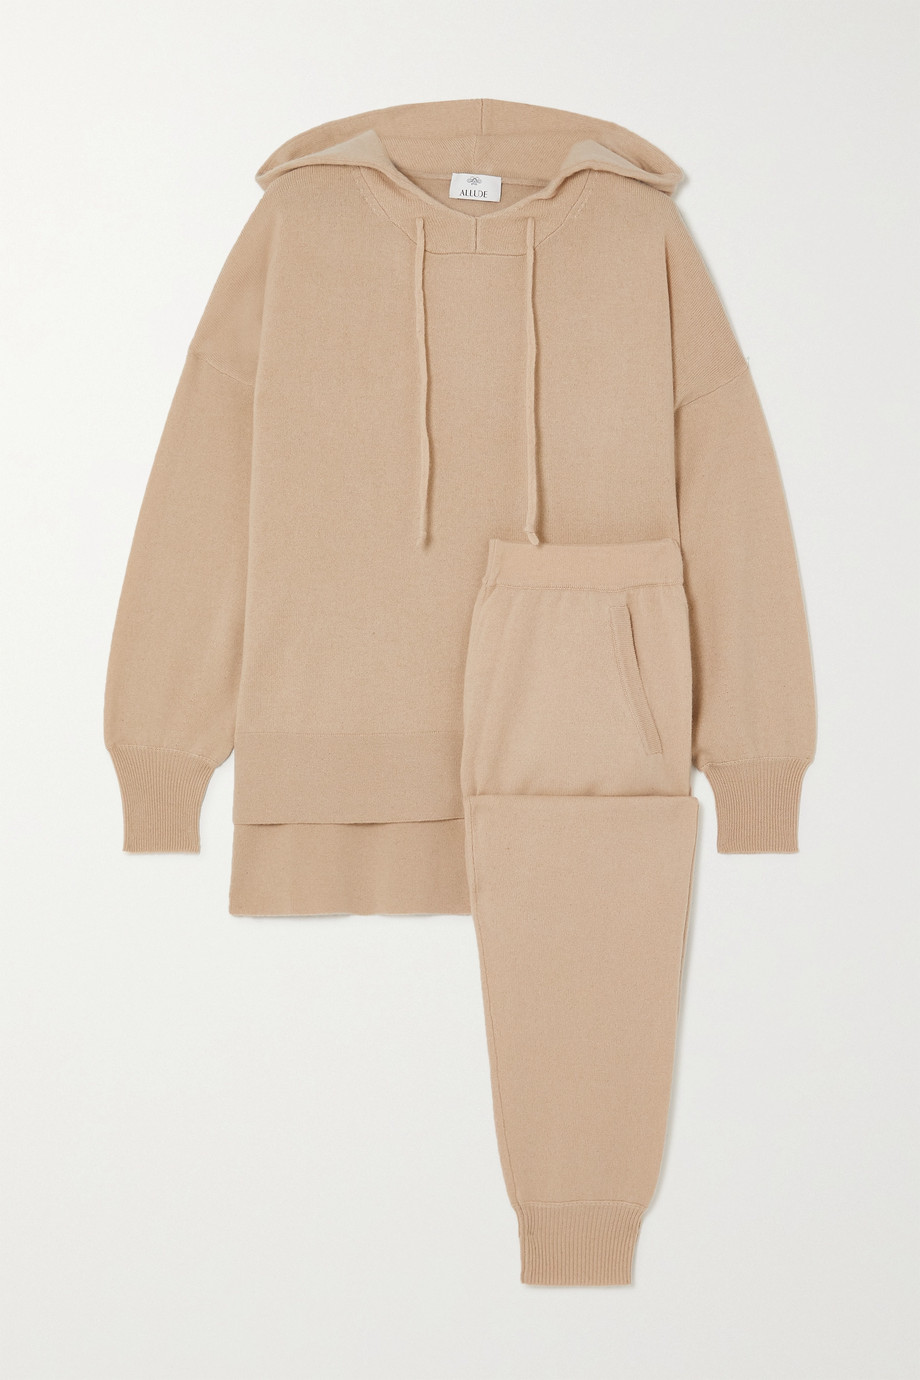 Allude Cashmere hoodie and track pants set